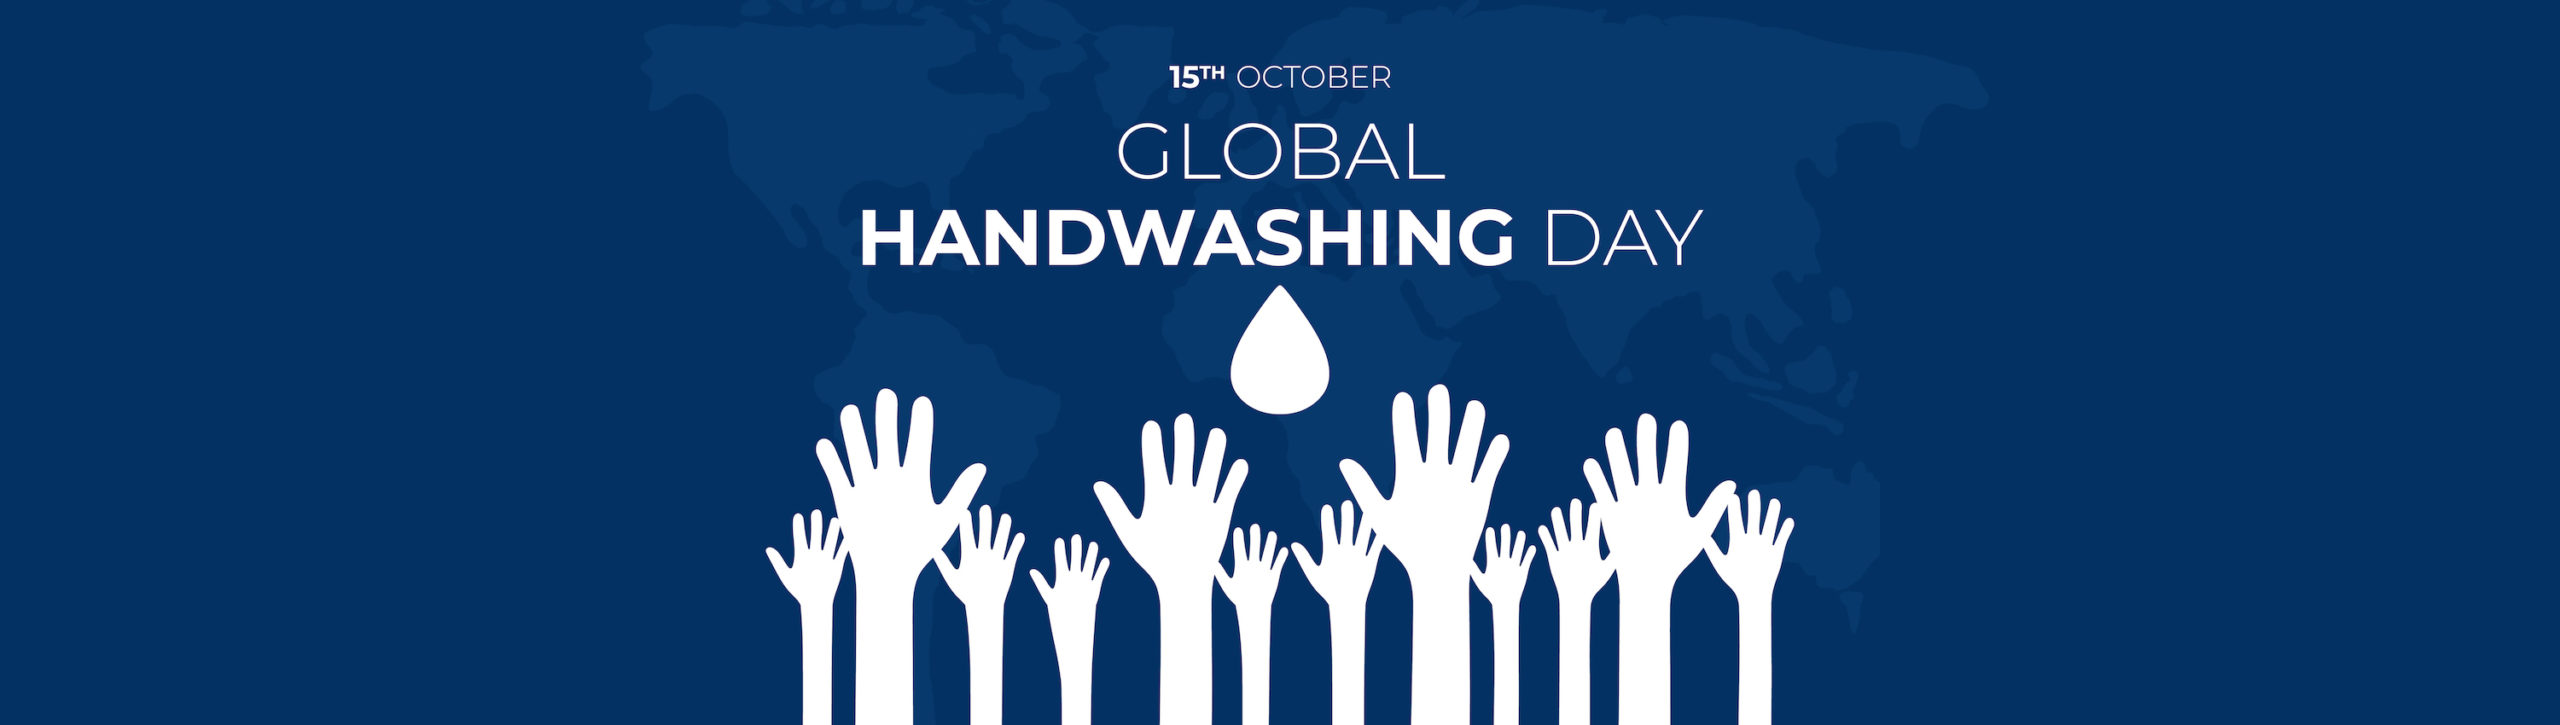 October 15th Global Handwashing Day Banner